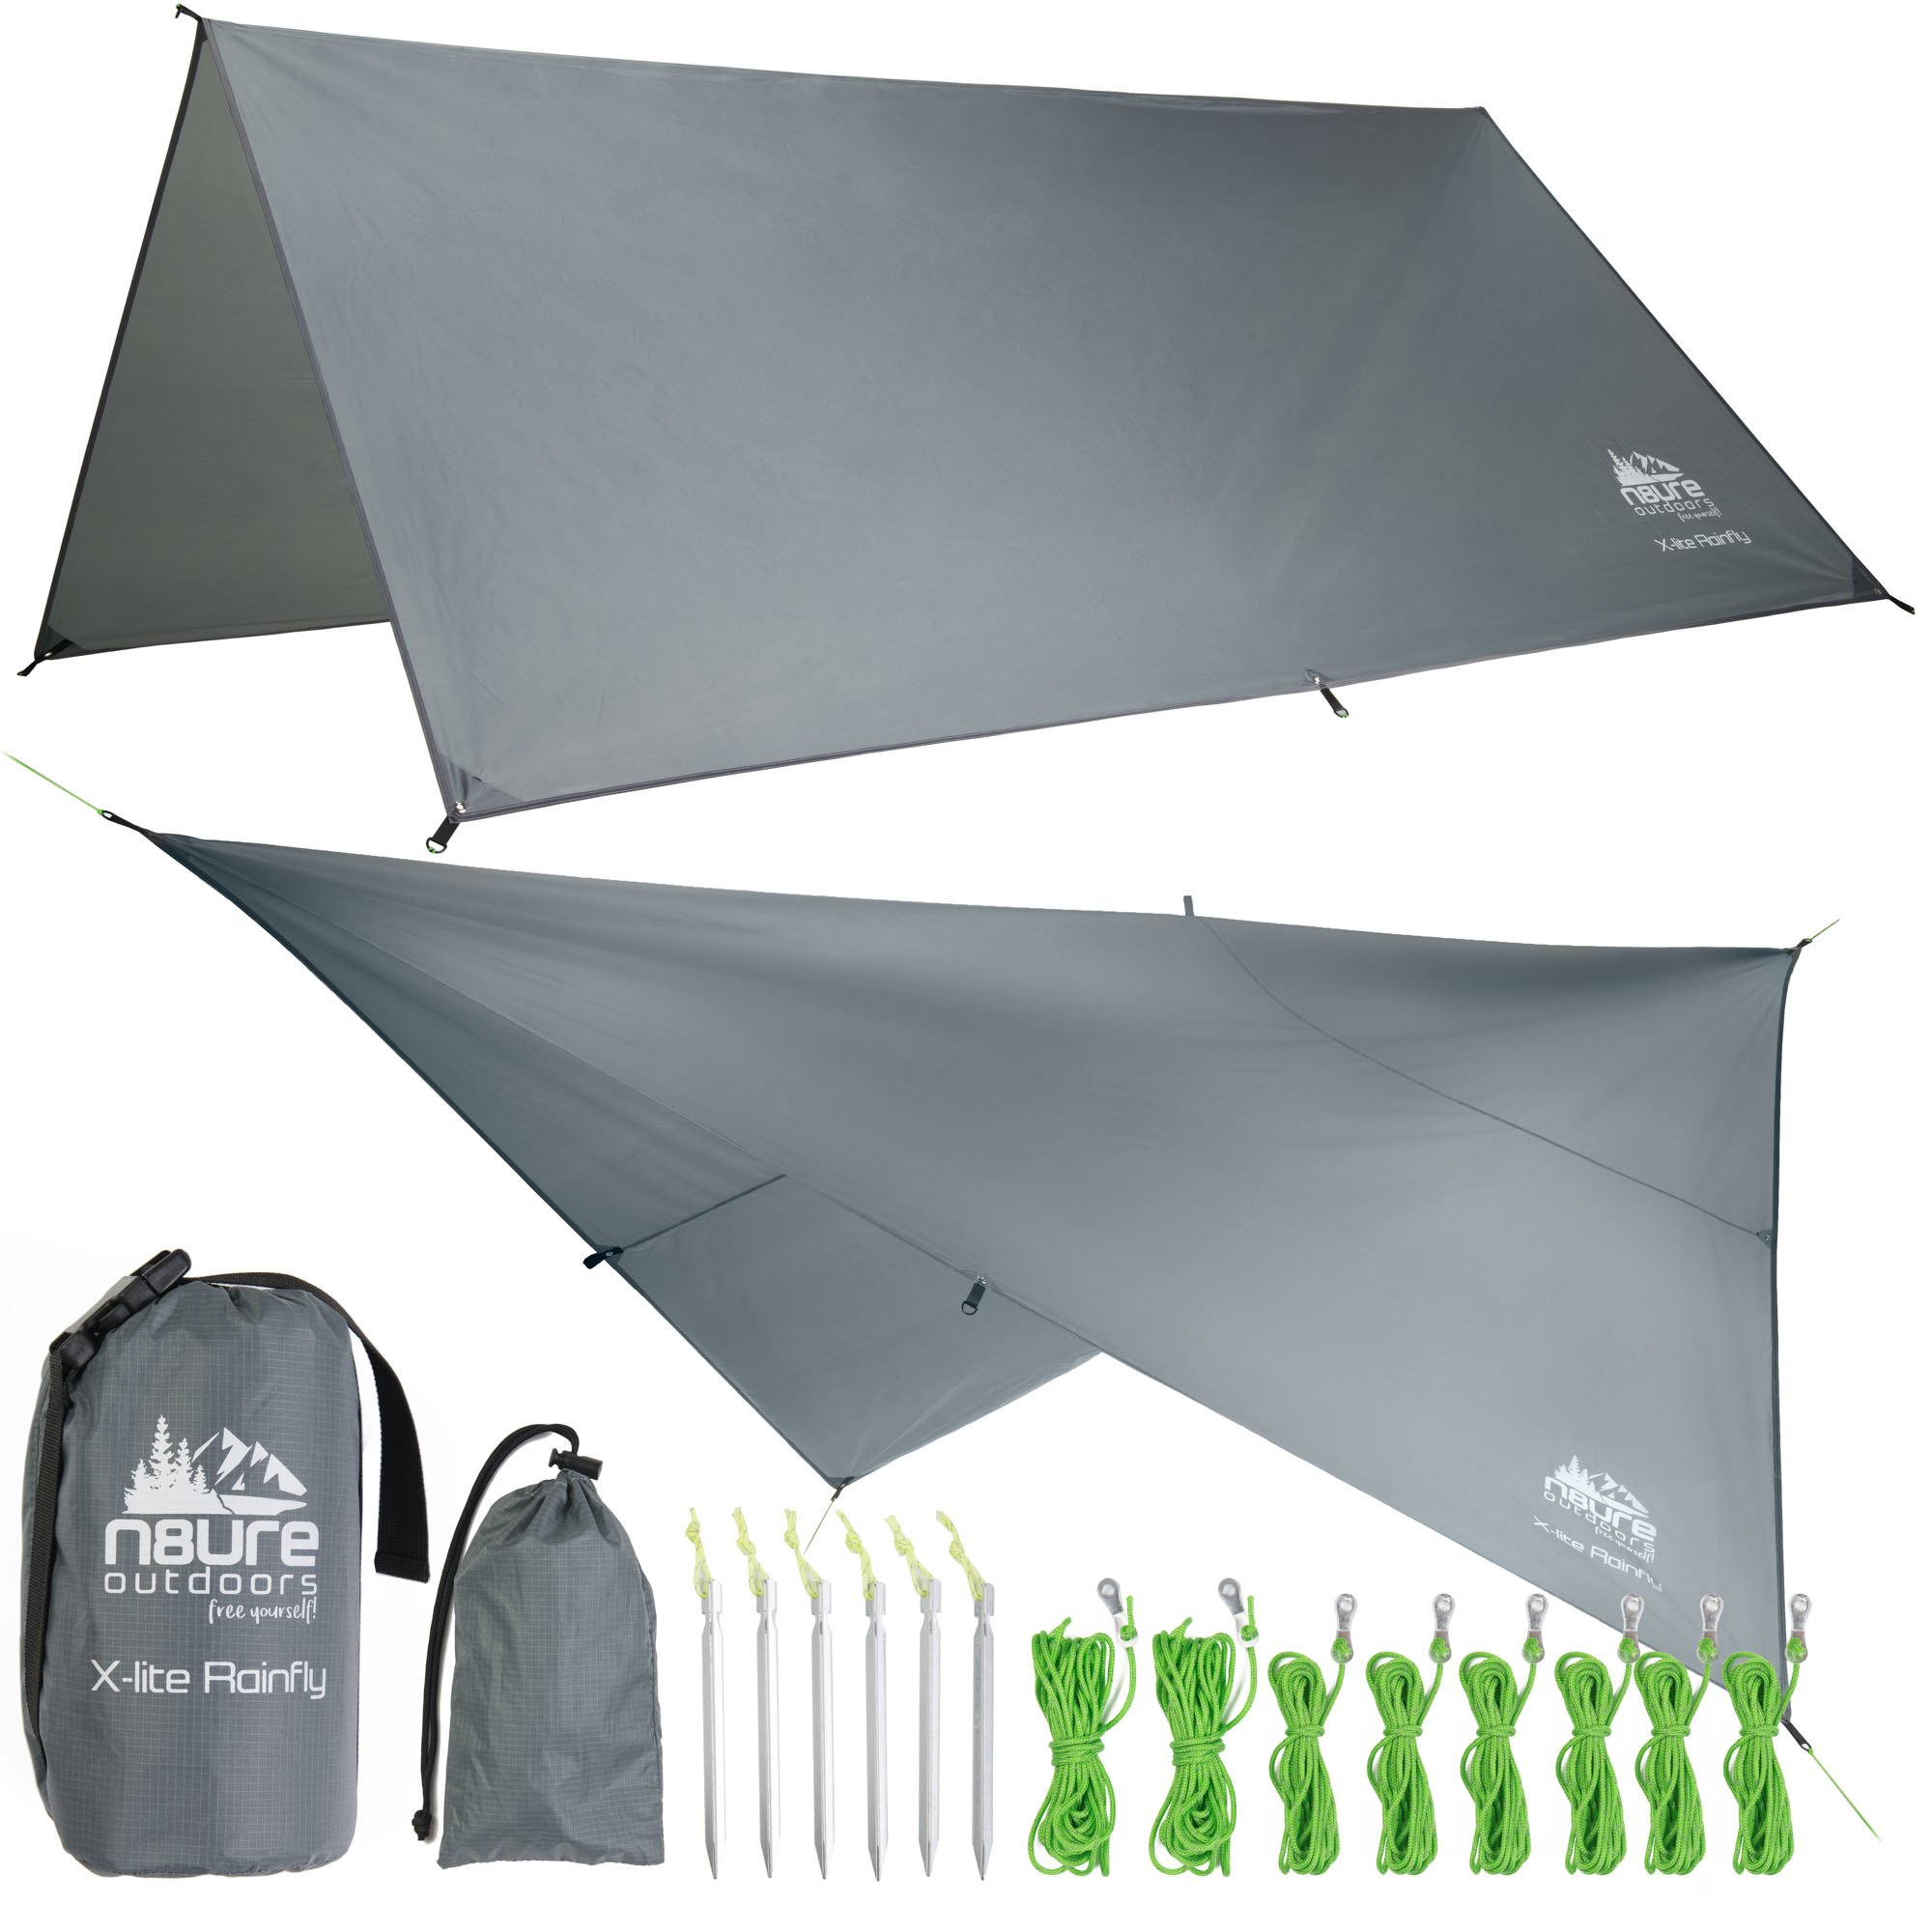 Camping 10'x10' Rain Fly Tarp Large Ripstop Nylon Waterproof Outdoor Tent Shelter Ultralight Hammock Camp Backpack Hike Accessory Bushcraft Survival Gear Includes Stakes Ropes Stuff Sack